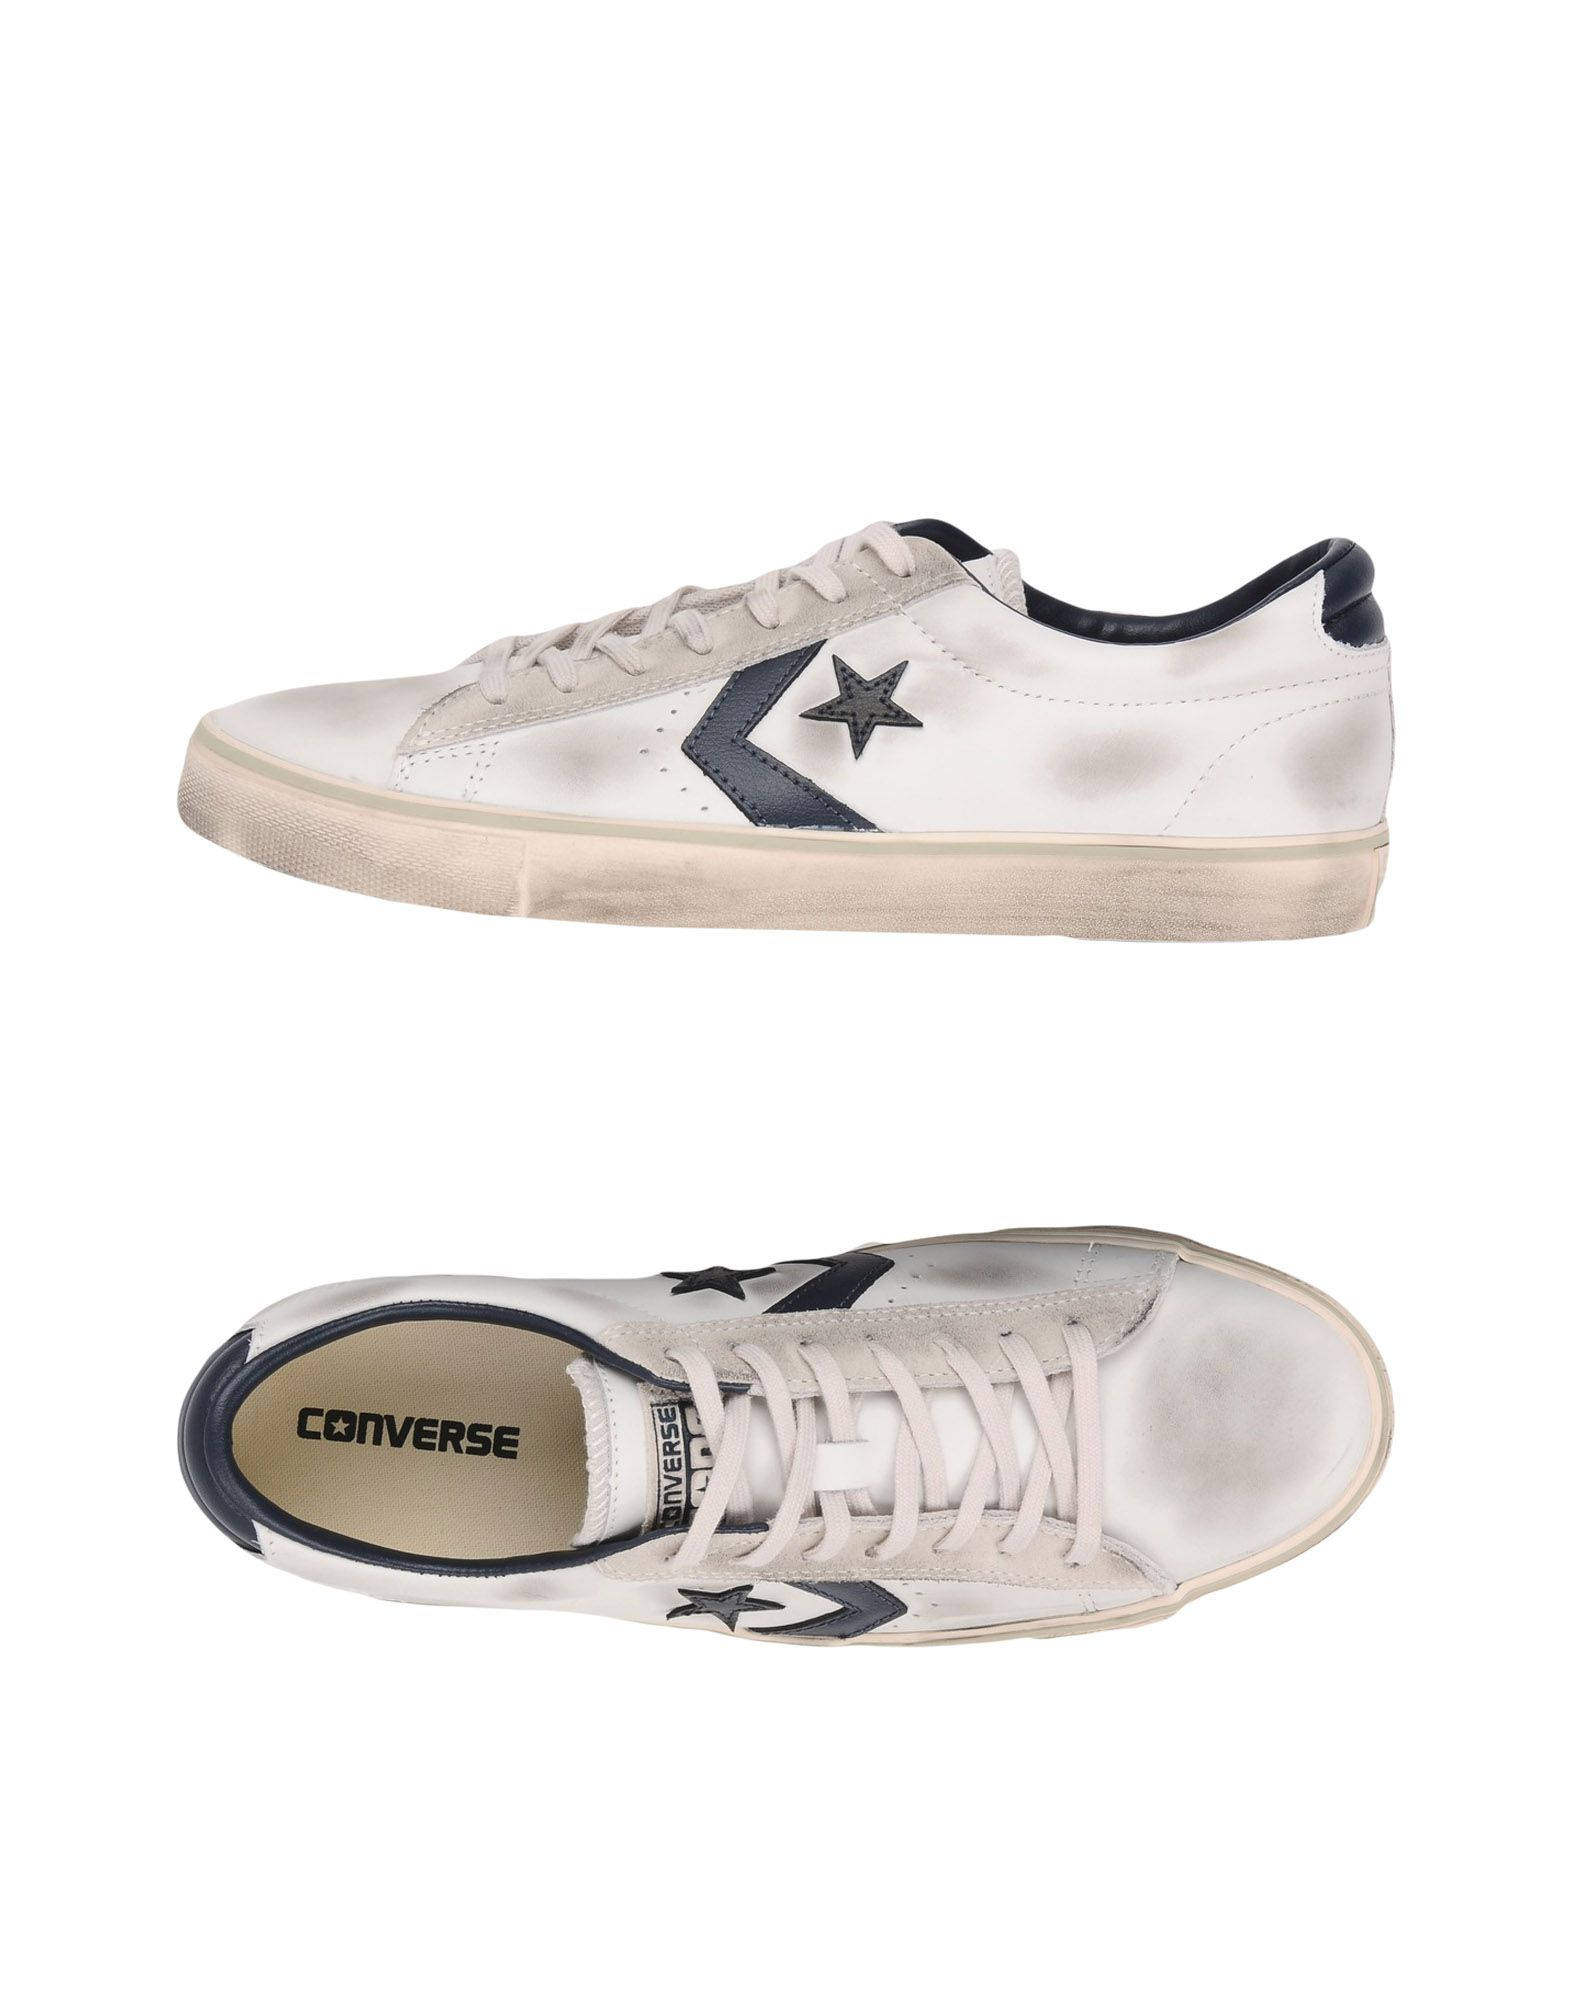 Converse Cons Pro Leather Vulc  Ox Leather Distressed  Vulc 11437504NV Heiße Schuhe c673c2